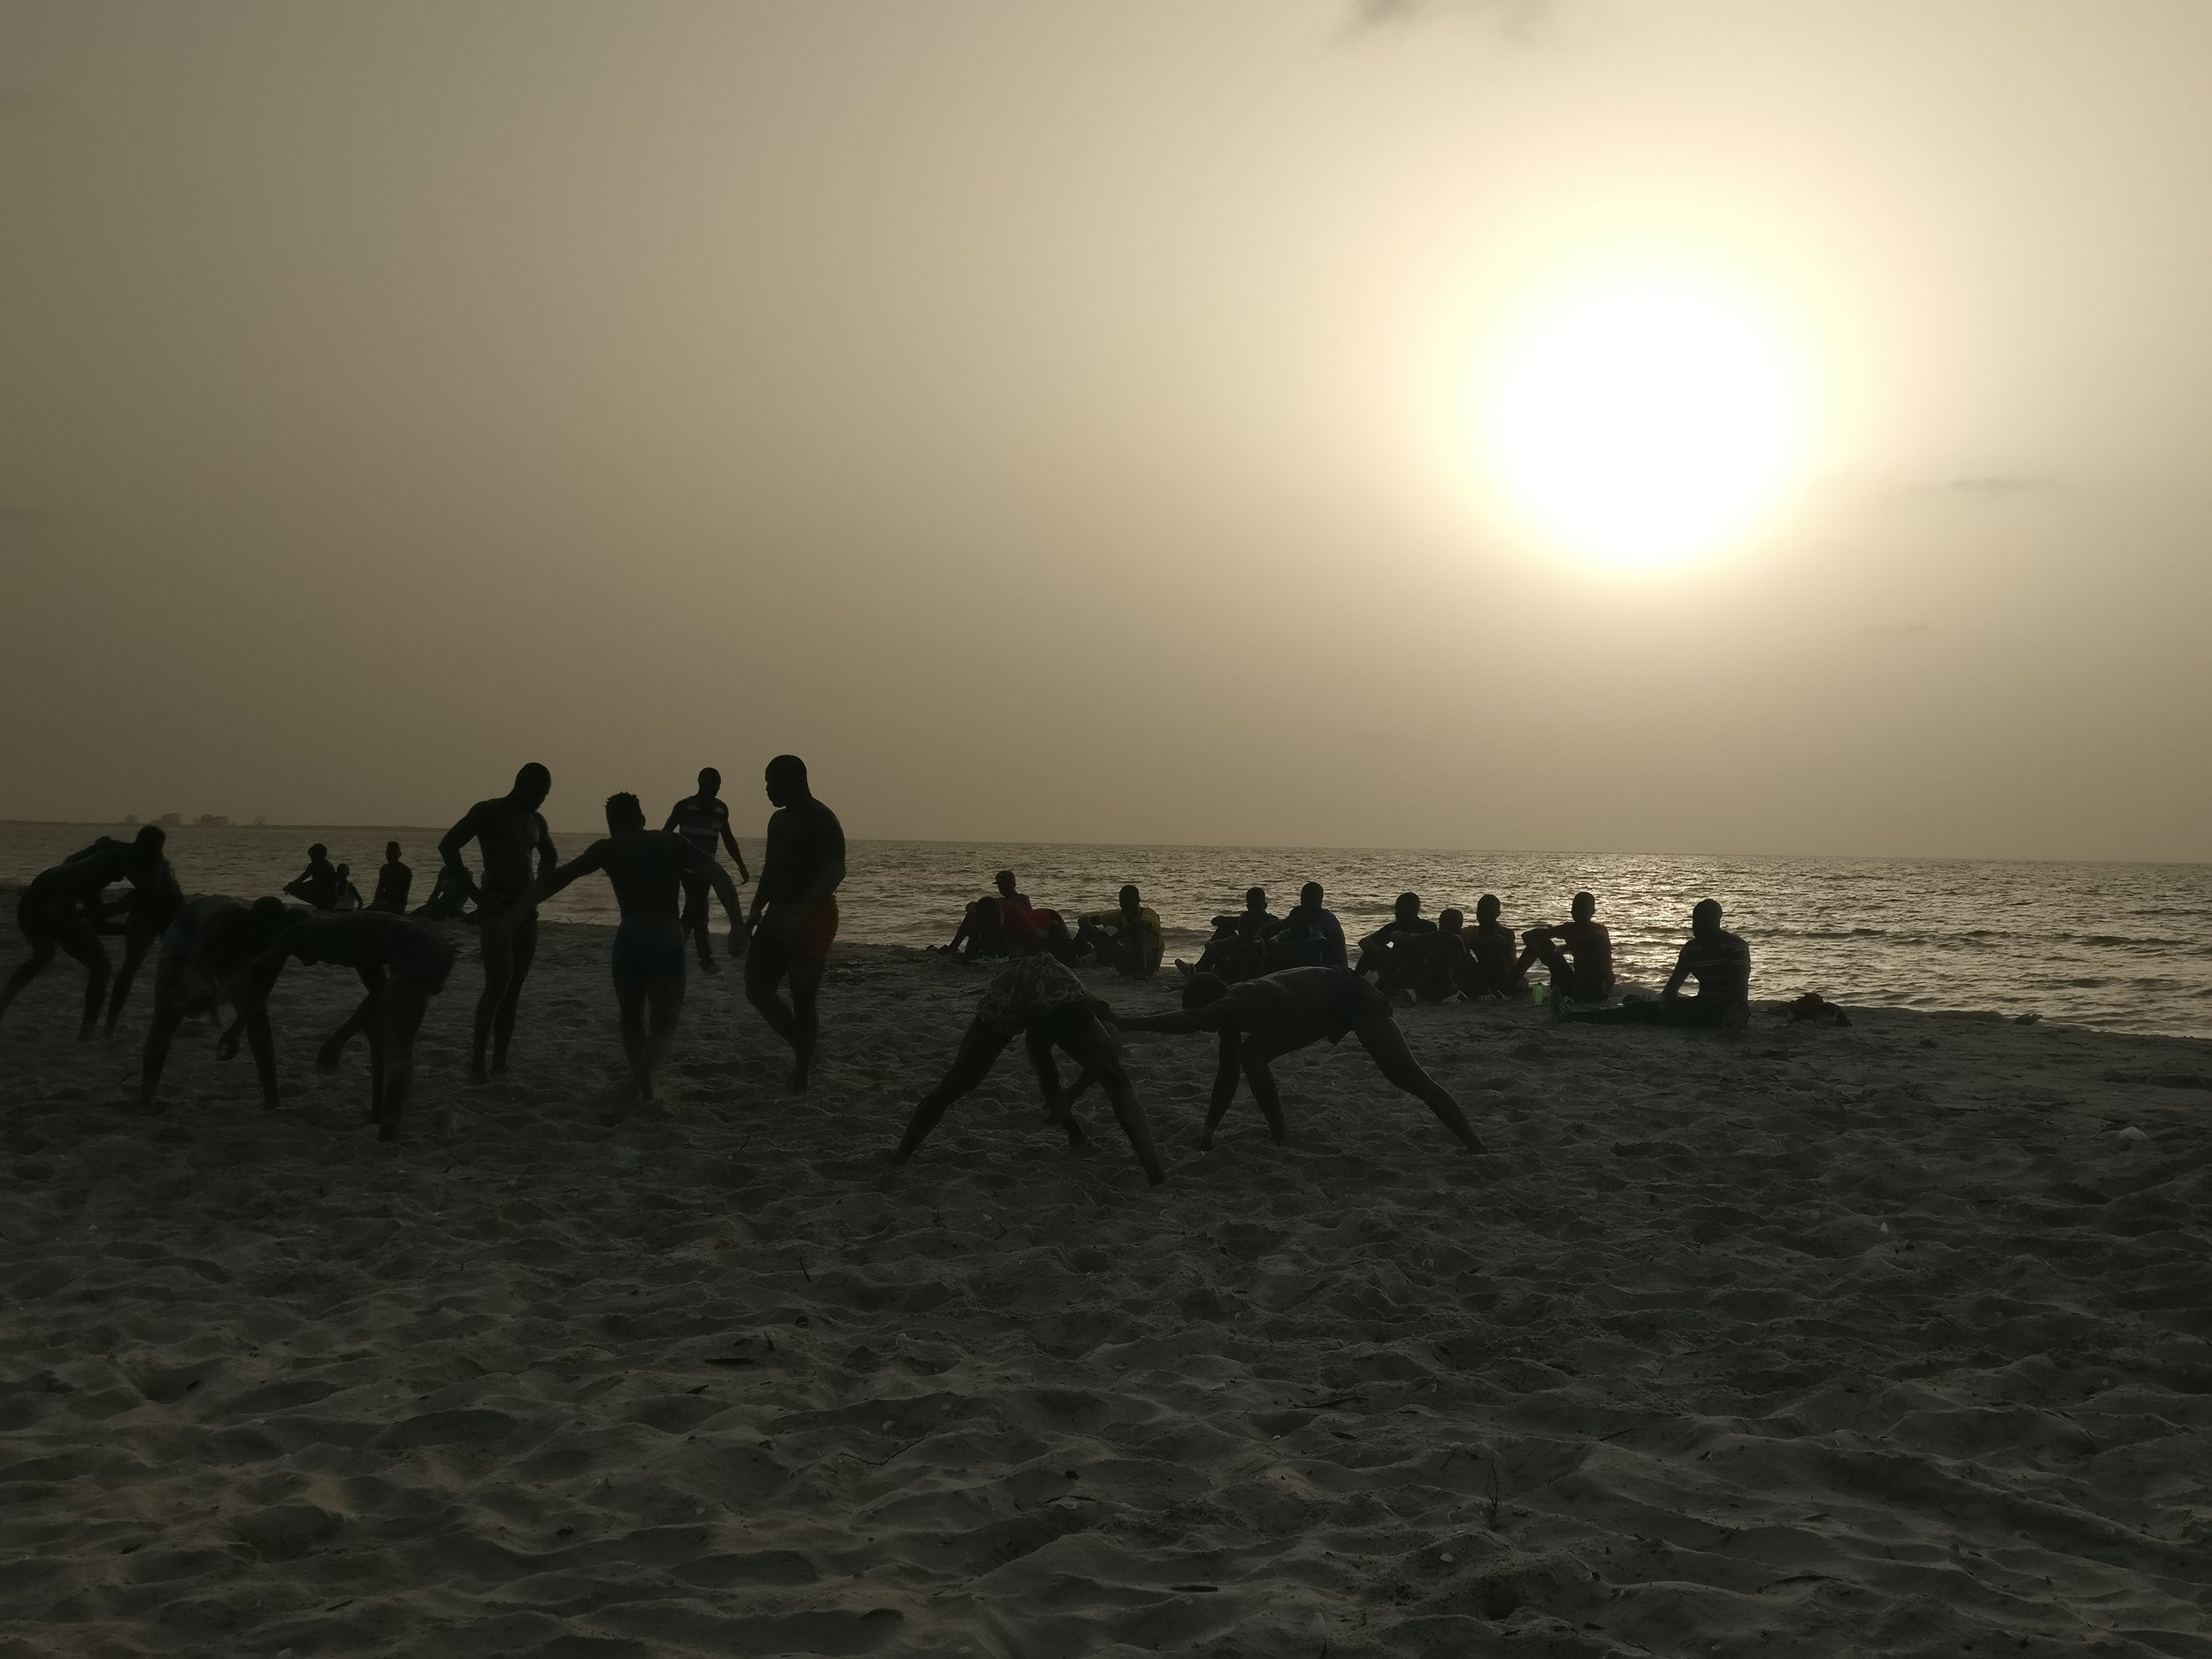 Senegalese traditional wrestling matches, Sine saloum, Senega.jpg